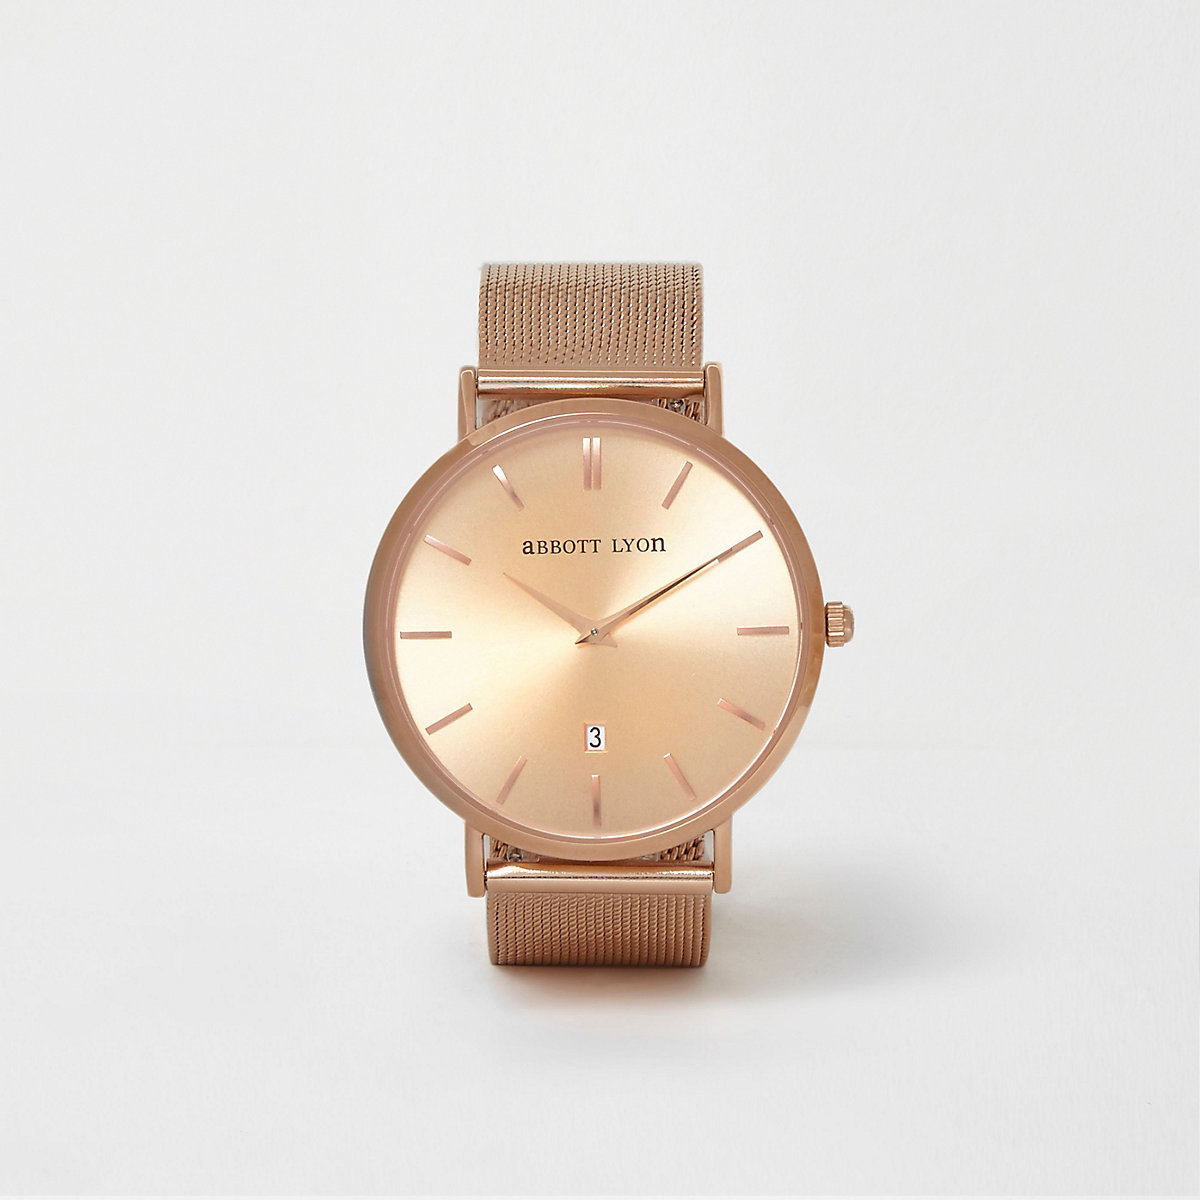 Rose gold plated Abbott Lyon mesh watch